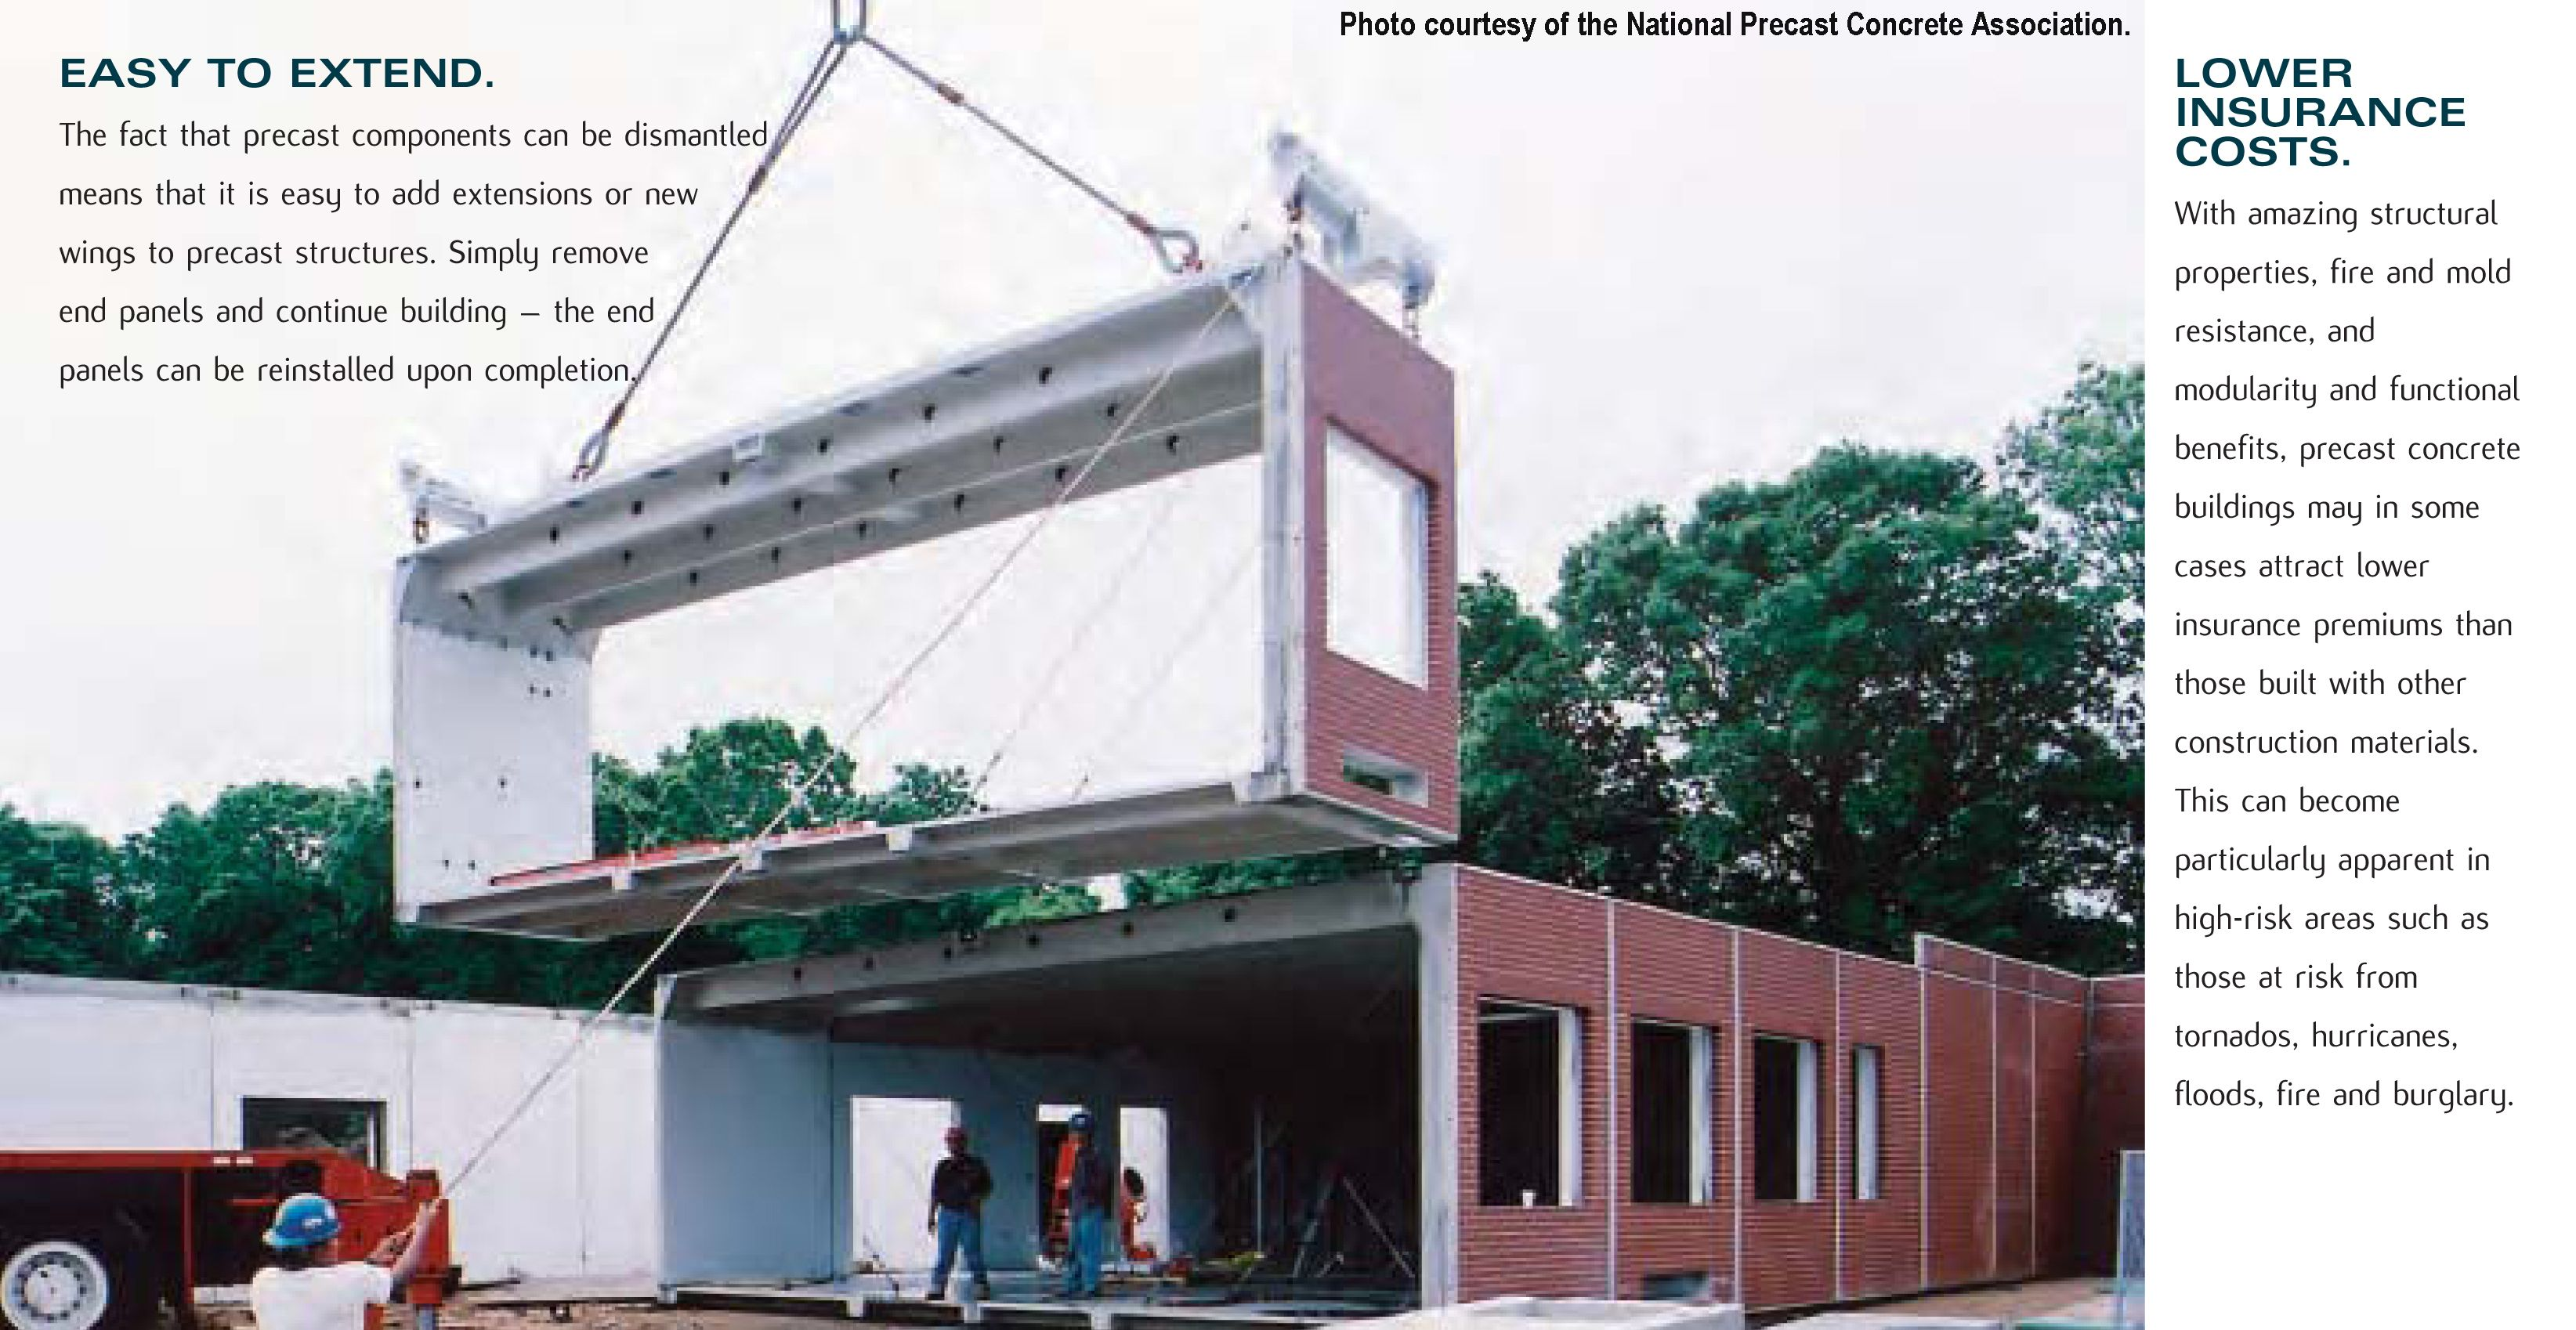 The Fact That Precast Components Can Be Dismantled Means That It